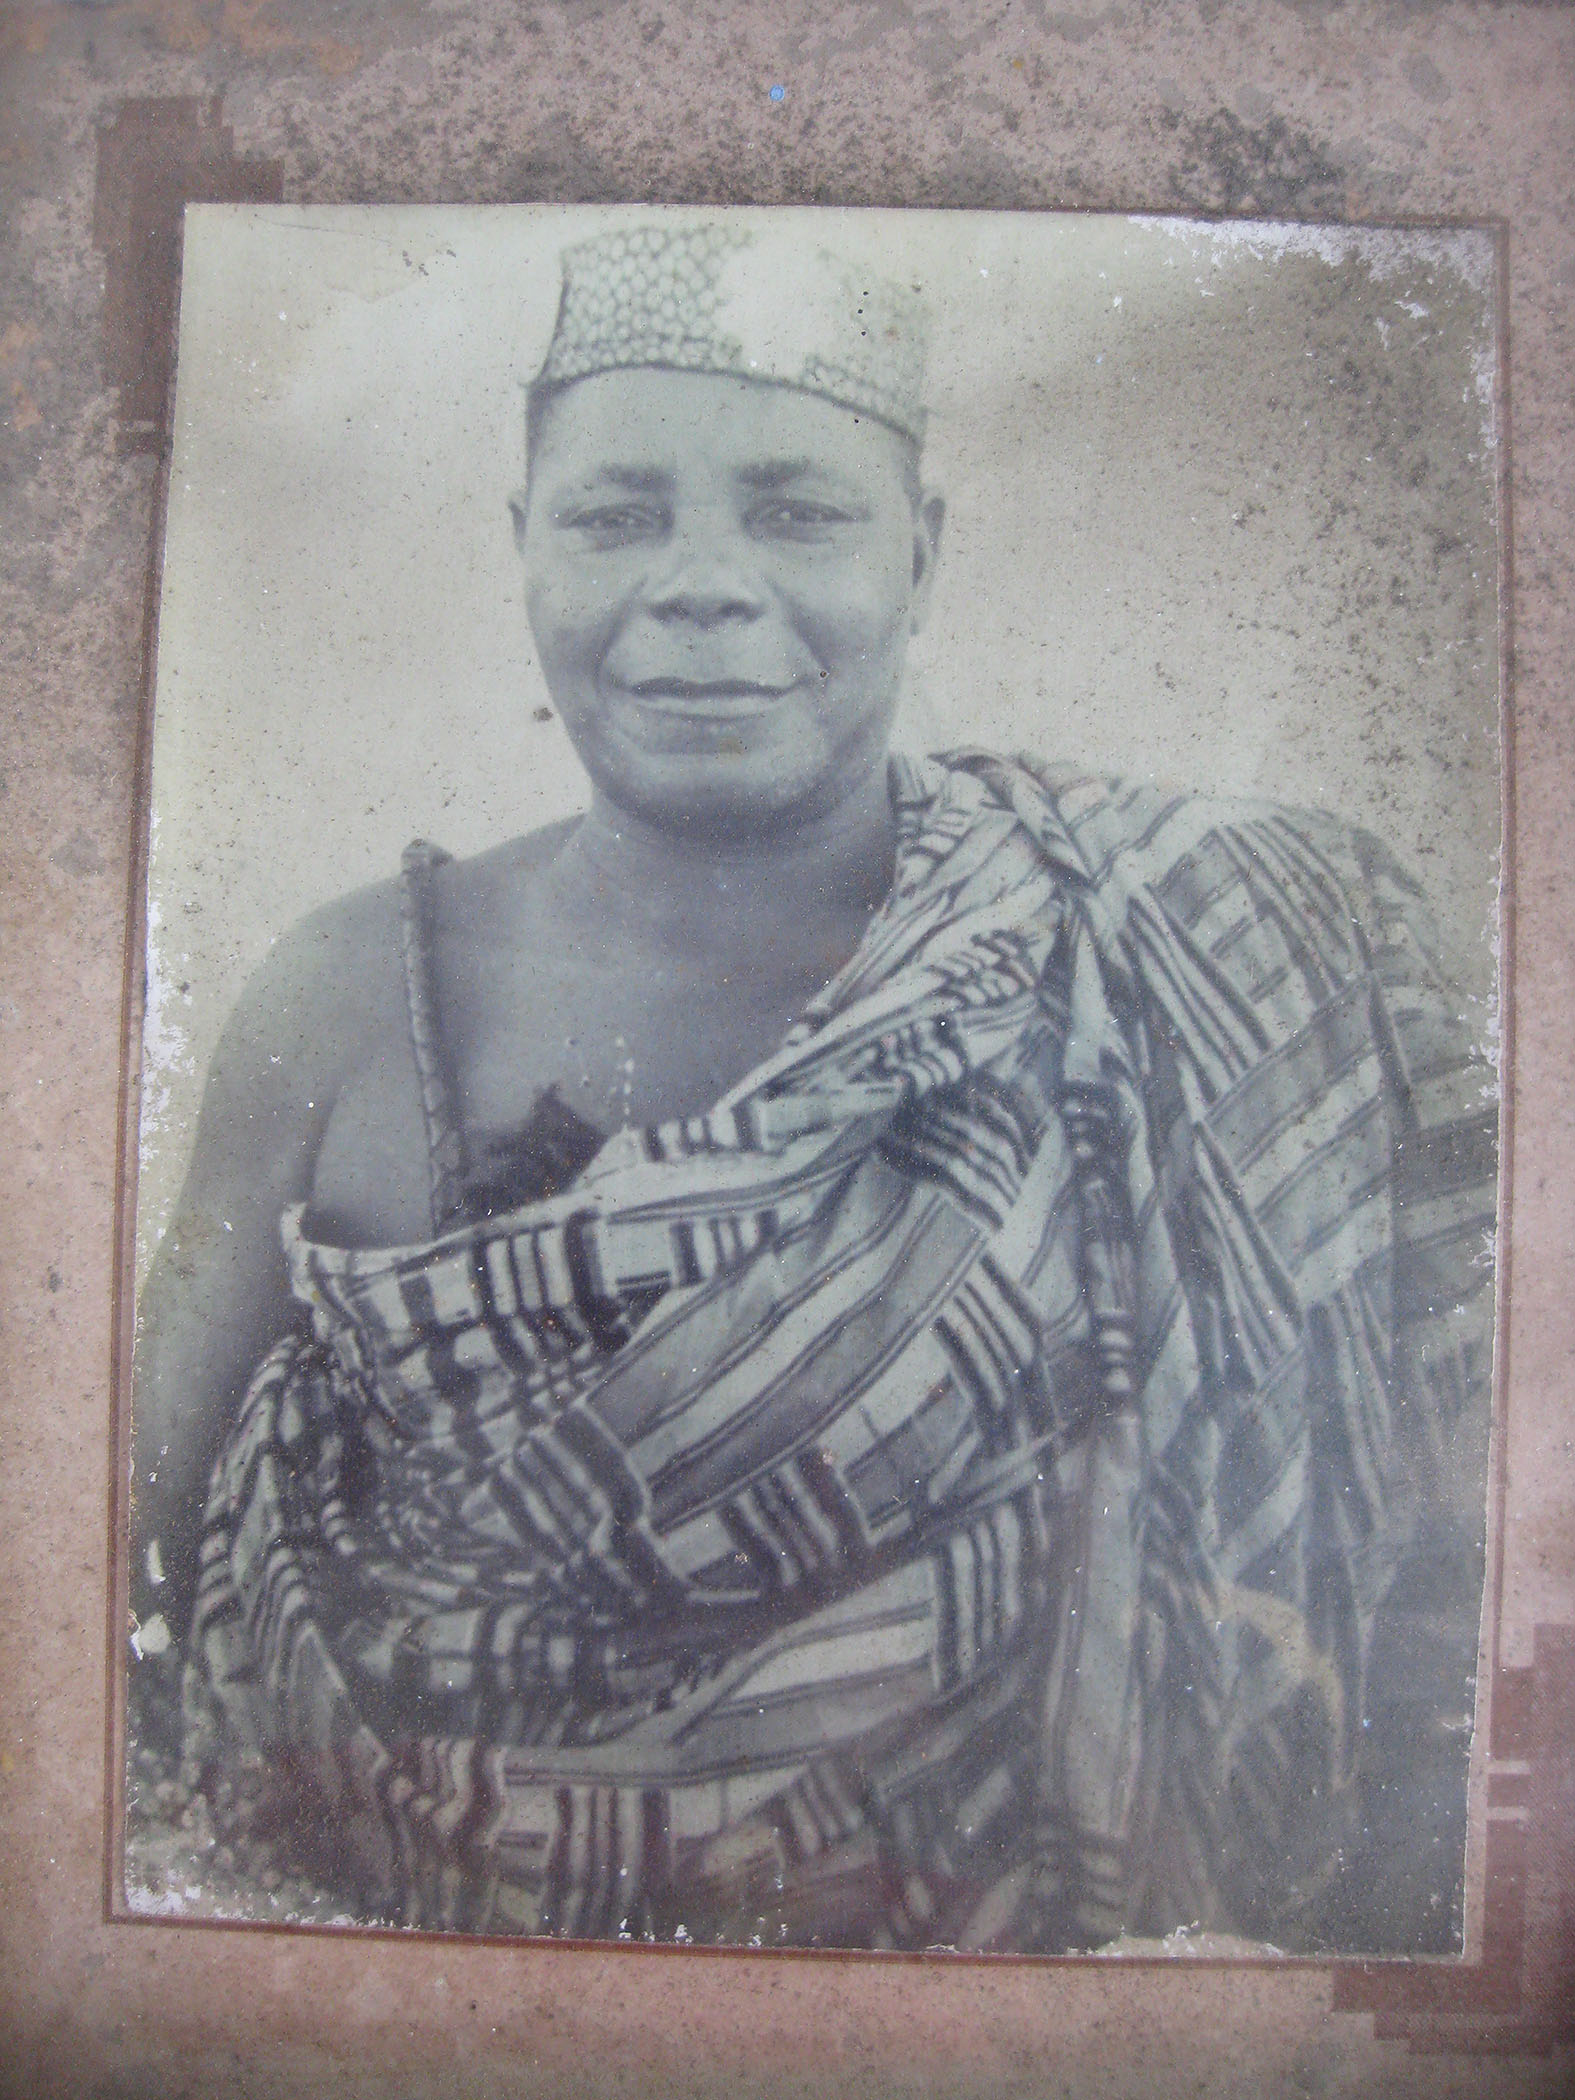 Photo of the Chief Driver of Teshie. Source: Jennifer Hart.